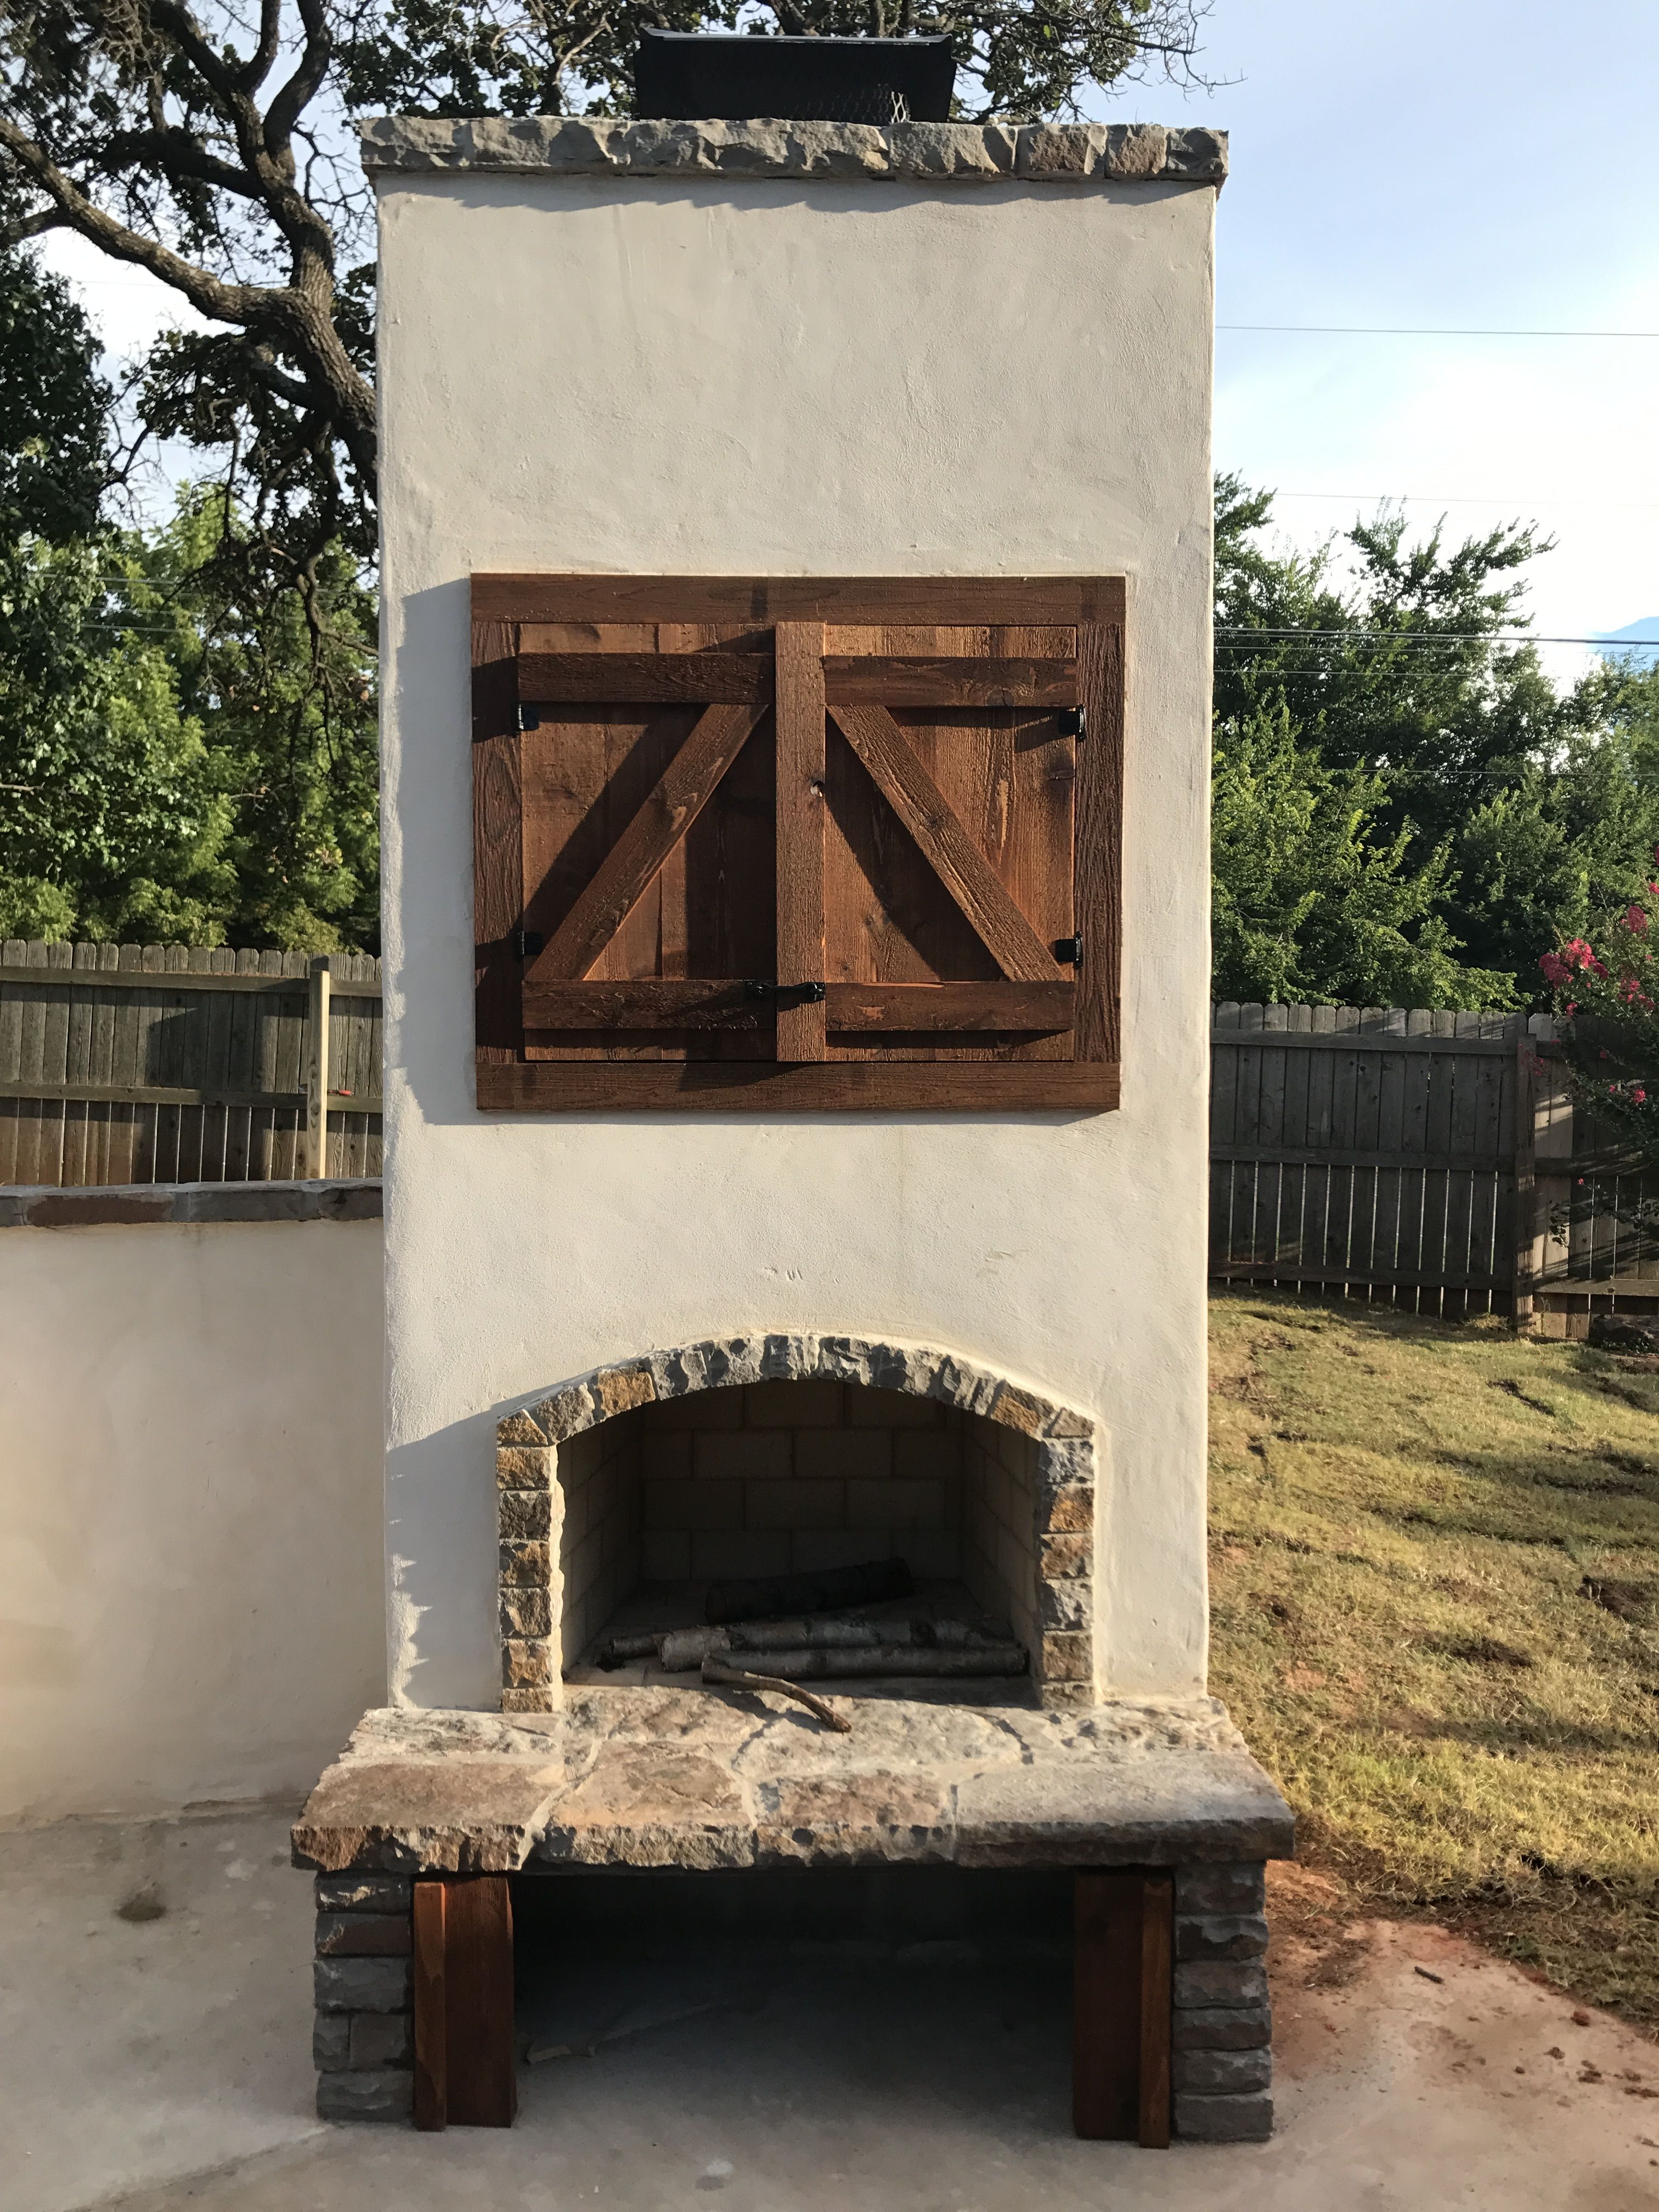 Pin by PMHOKC.com on Custom Outdoor Fireplaces | Custom ... on Simple Outdoor Brick Fireplace id=78042